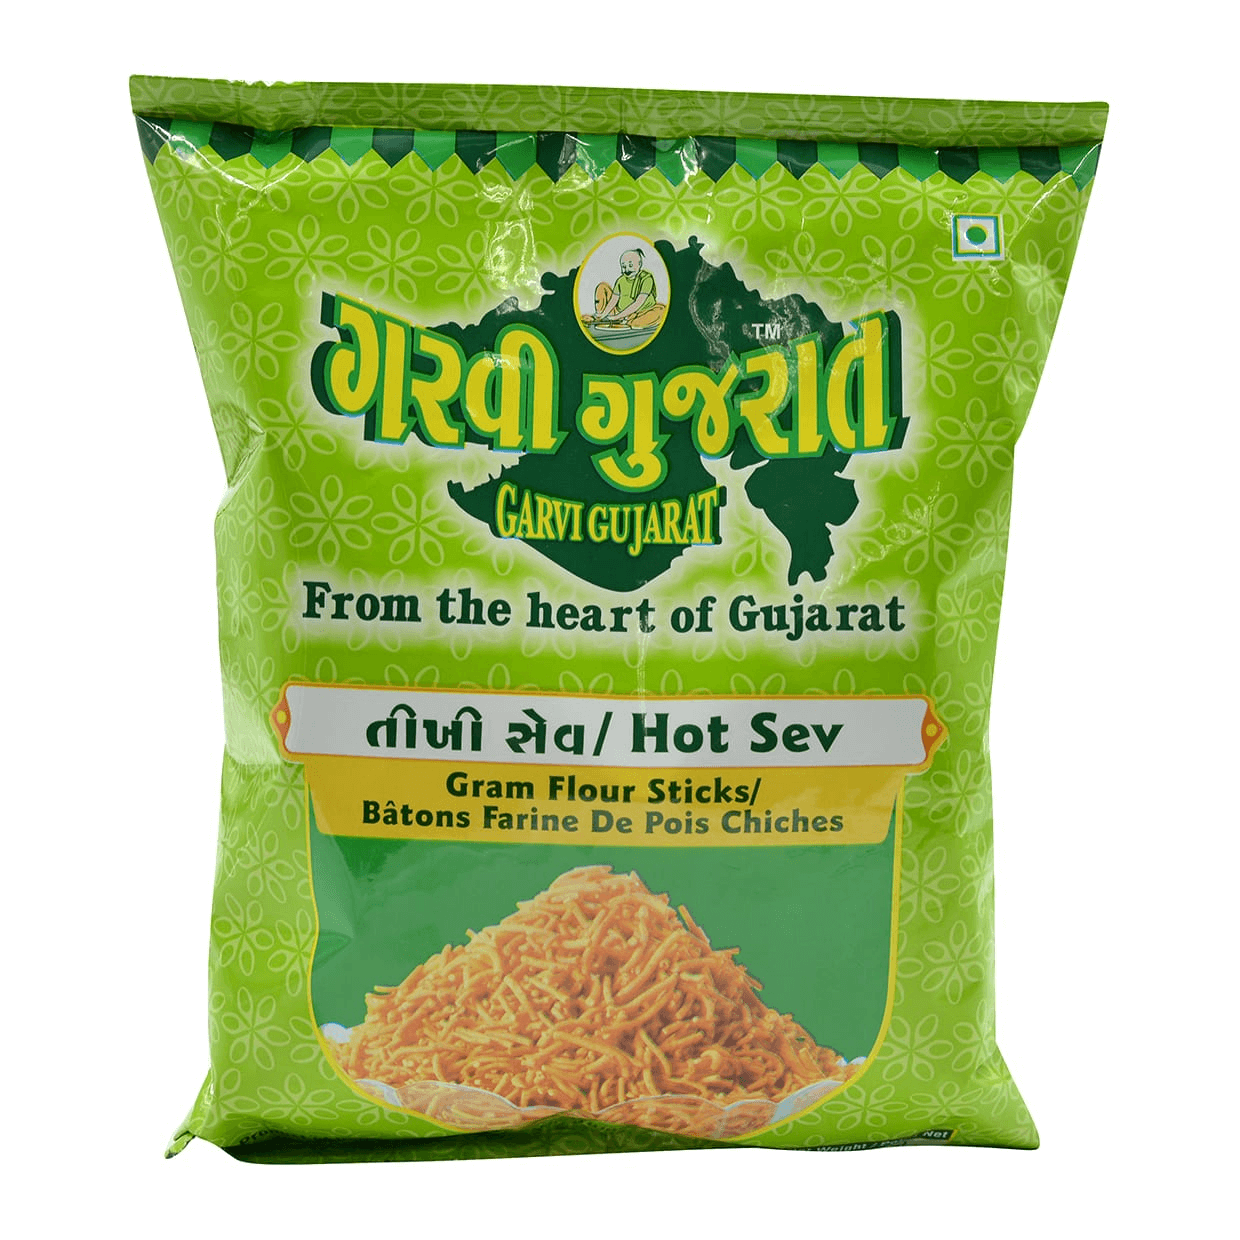 Garvi Gujarati hot Sev (Spicy gram flour sticks) - 10 Oz